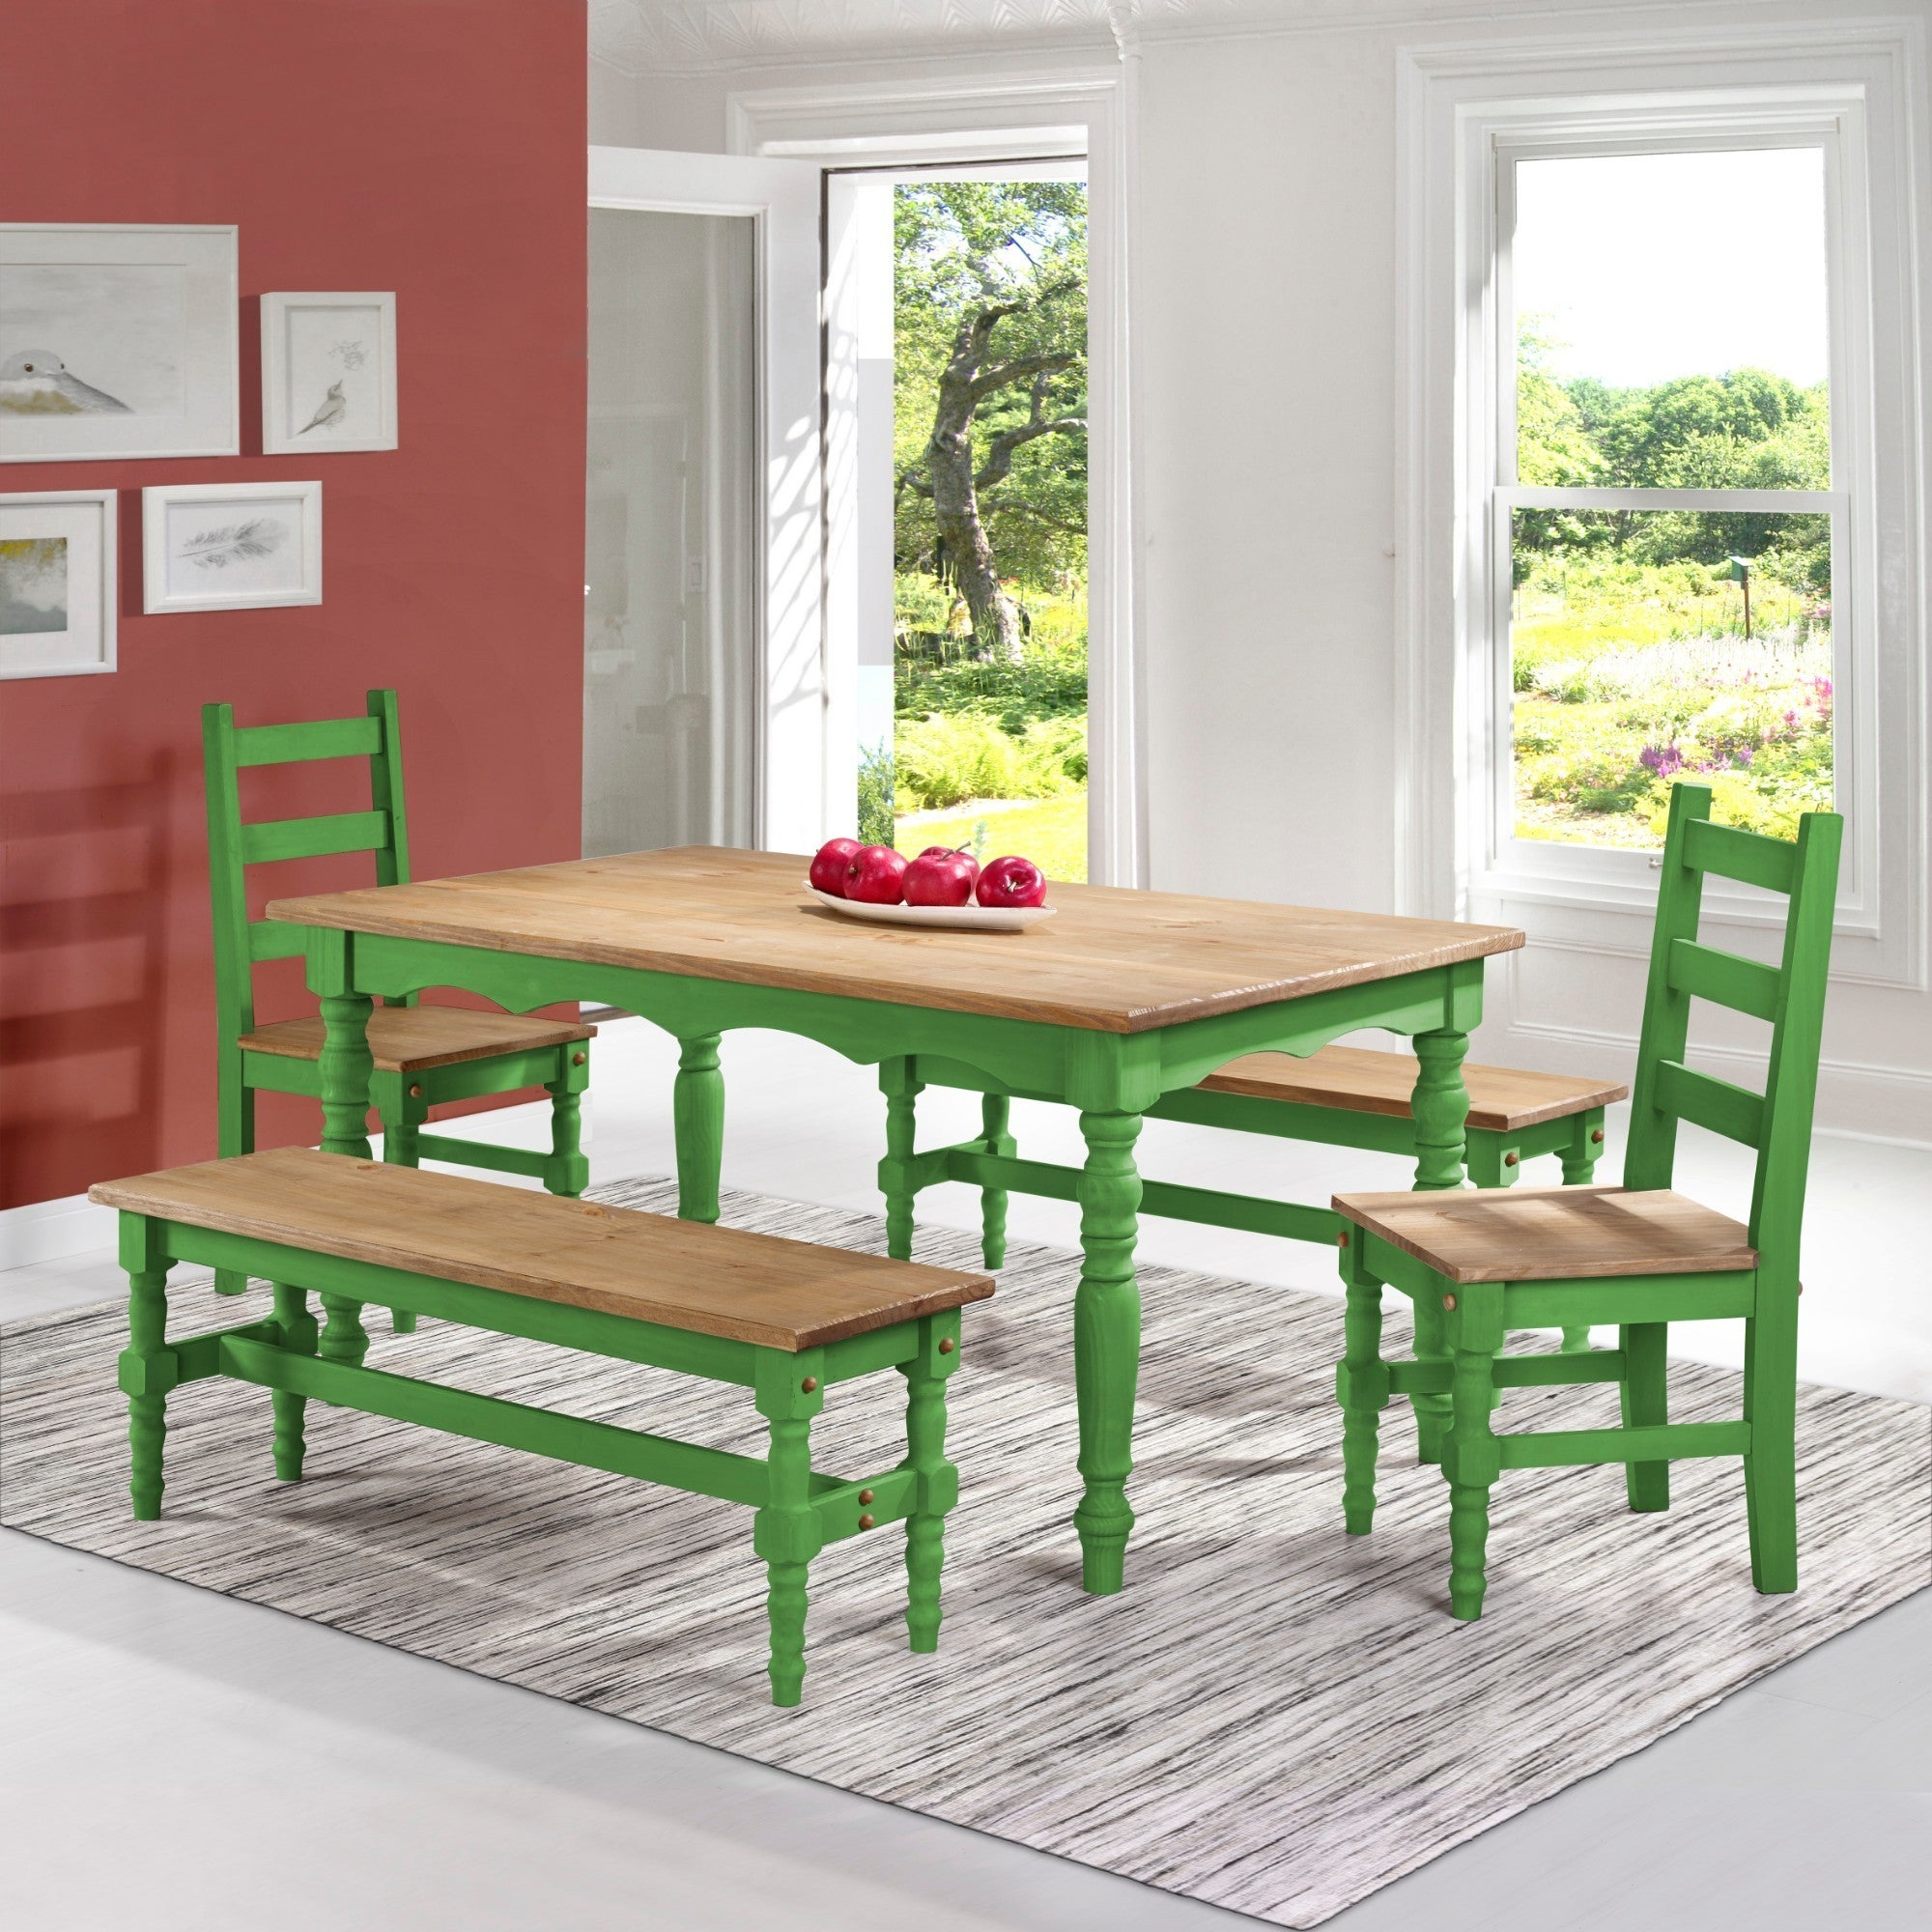 Superb Manhattan Comfort Jay 5 Piece Solid Wood Dining Set With 2 Benches 2 Chairs And 1 Table Gmtry Best Dining Table And Chair Ideas Images Gmtryco